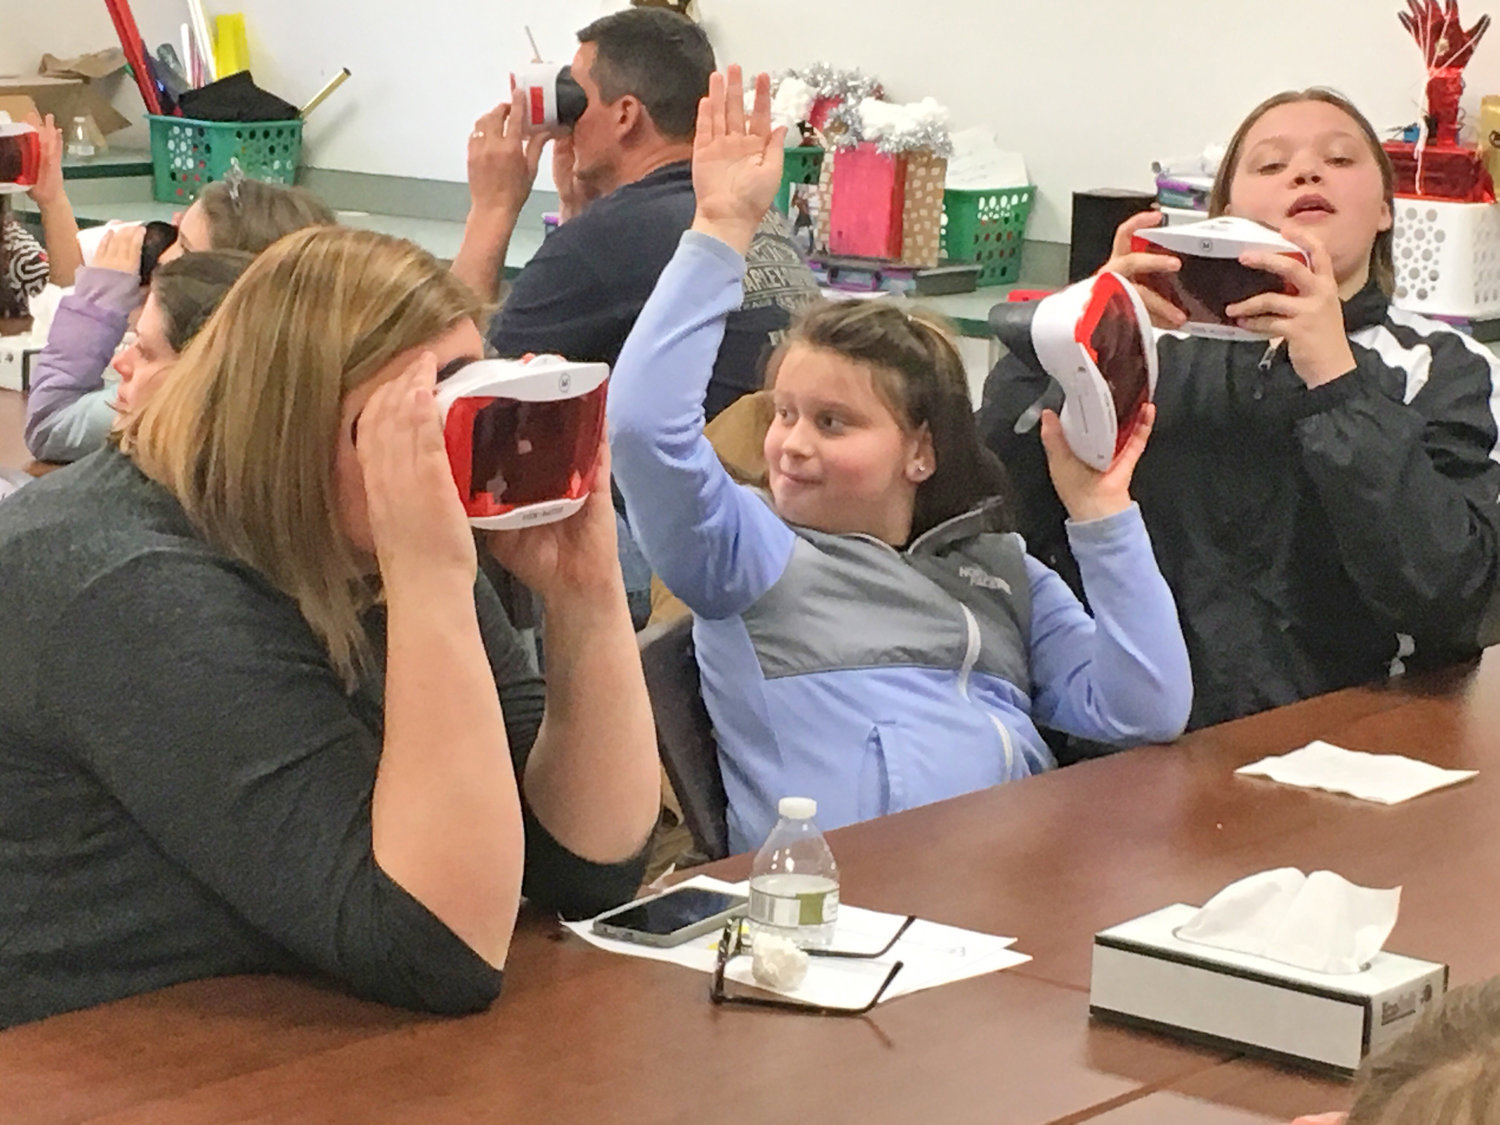 VIRTUAL REALITY TOUR — Jennifer Thurston-Brown, left, along with daughters Amber, fourth grade, and Madison, seventh grade, take turns climbing Mount Everest during the virtual reality activity at the ZI3 STEAM Adventure Night.